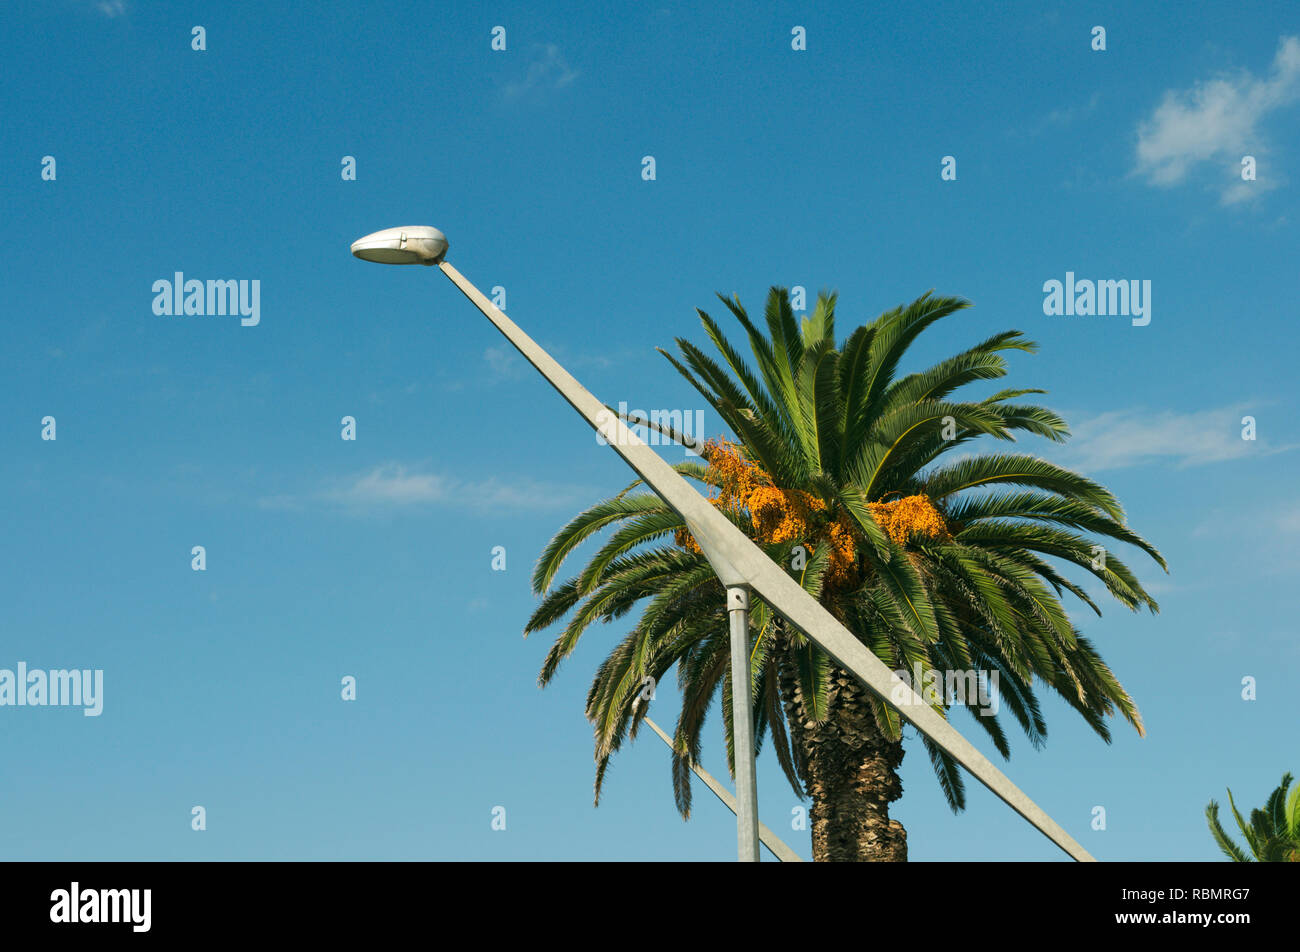 palm tree and modern design street lamp Stock Photo